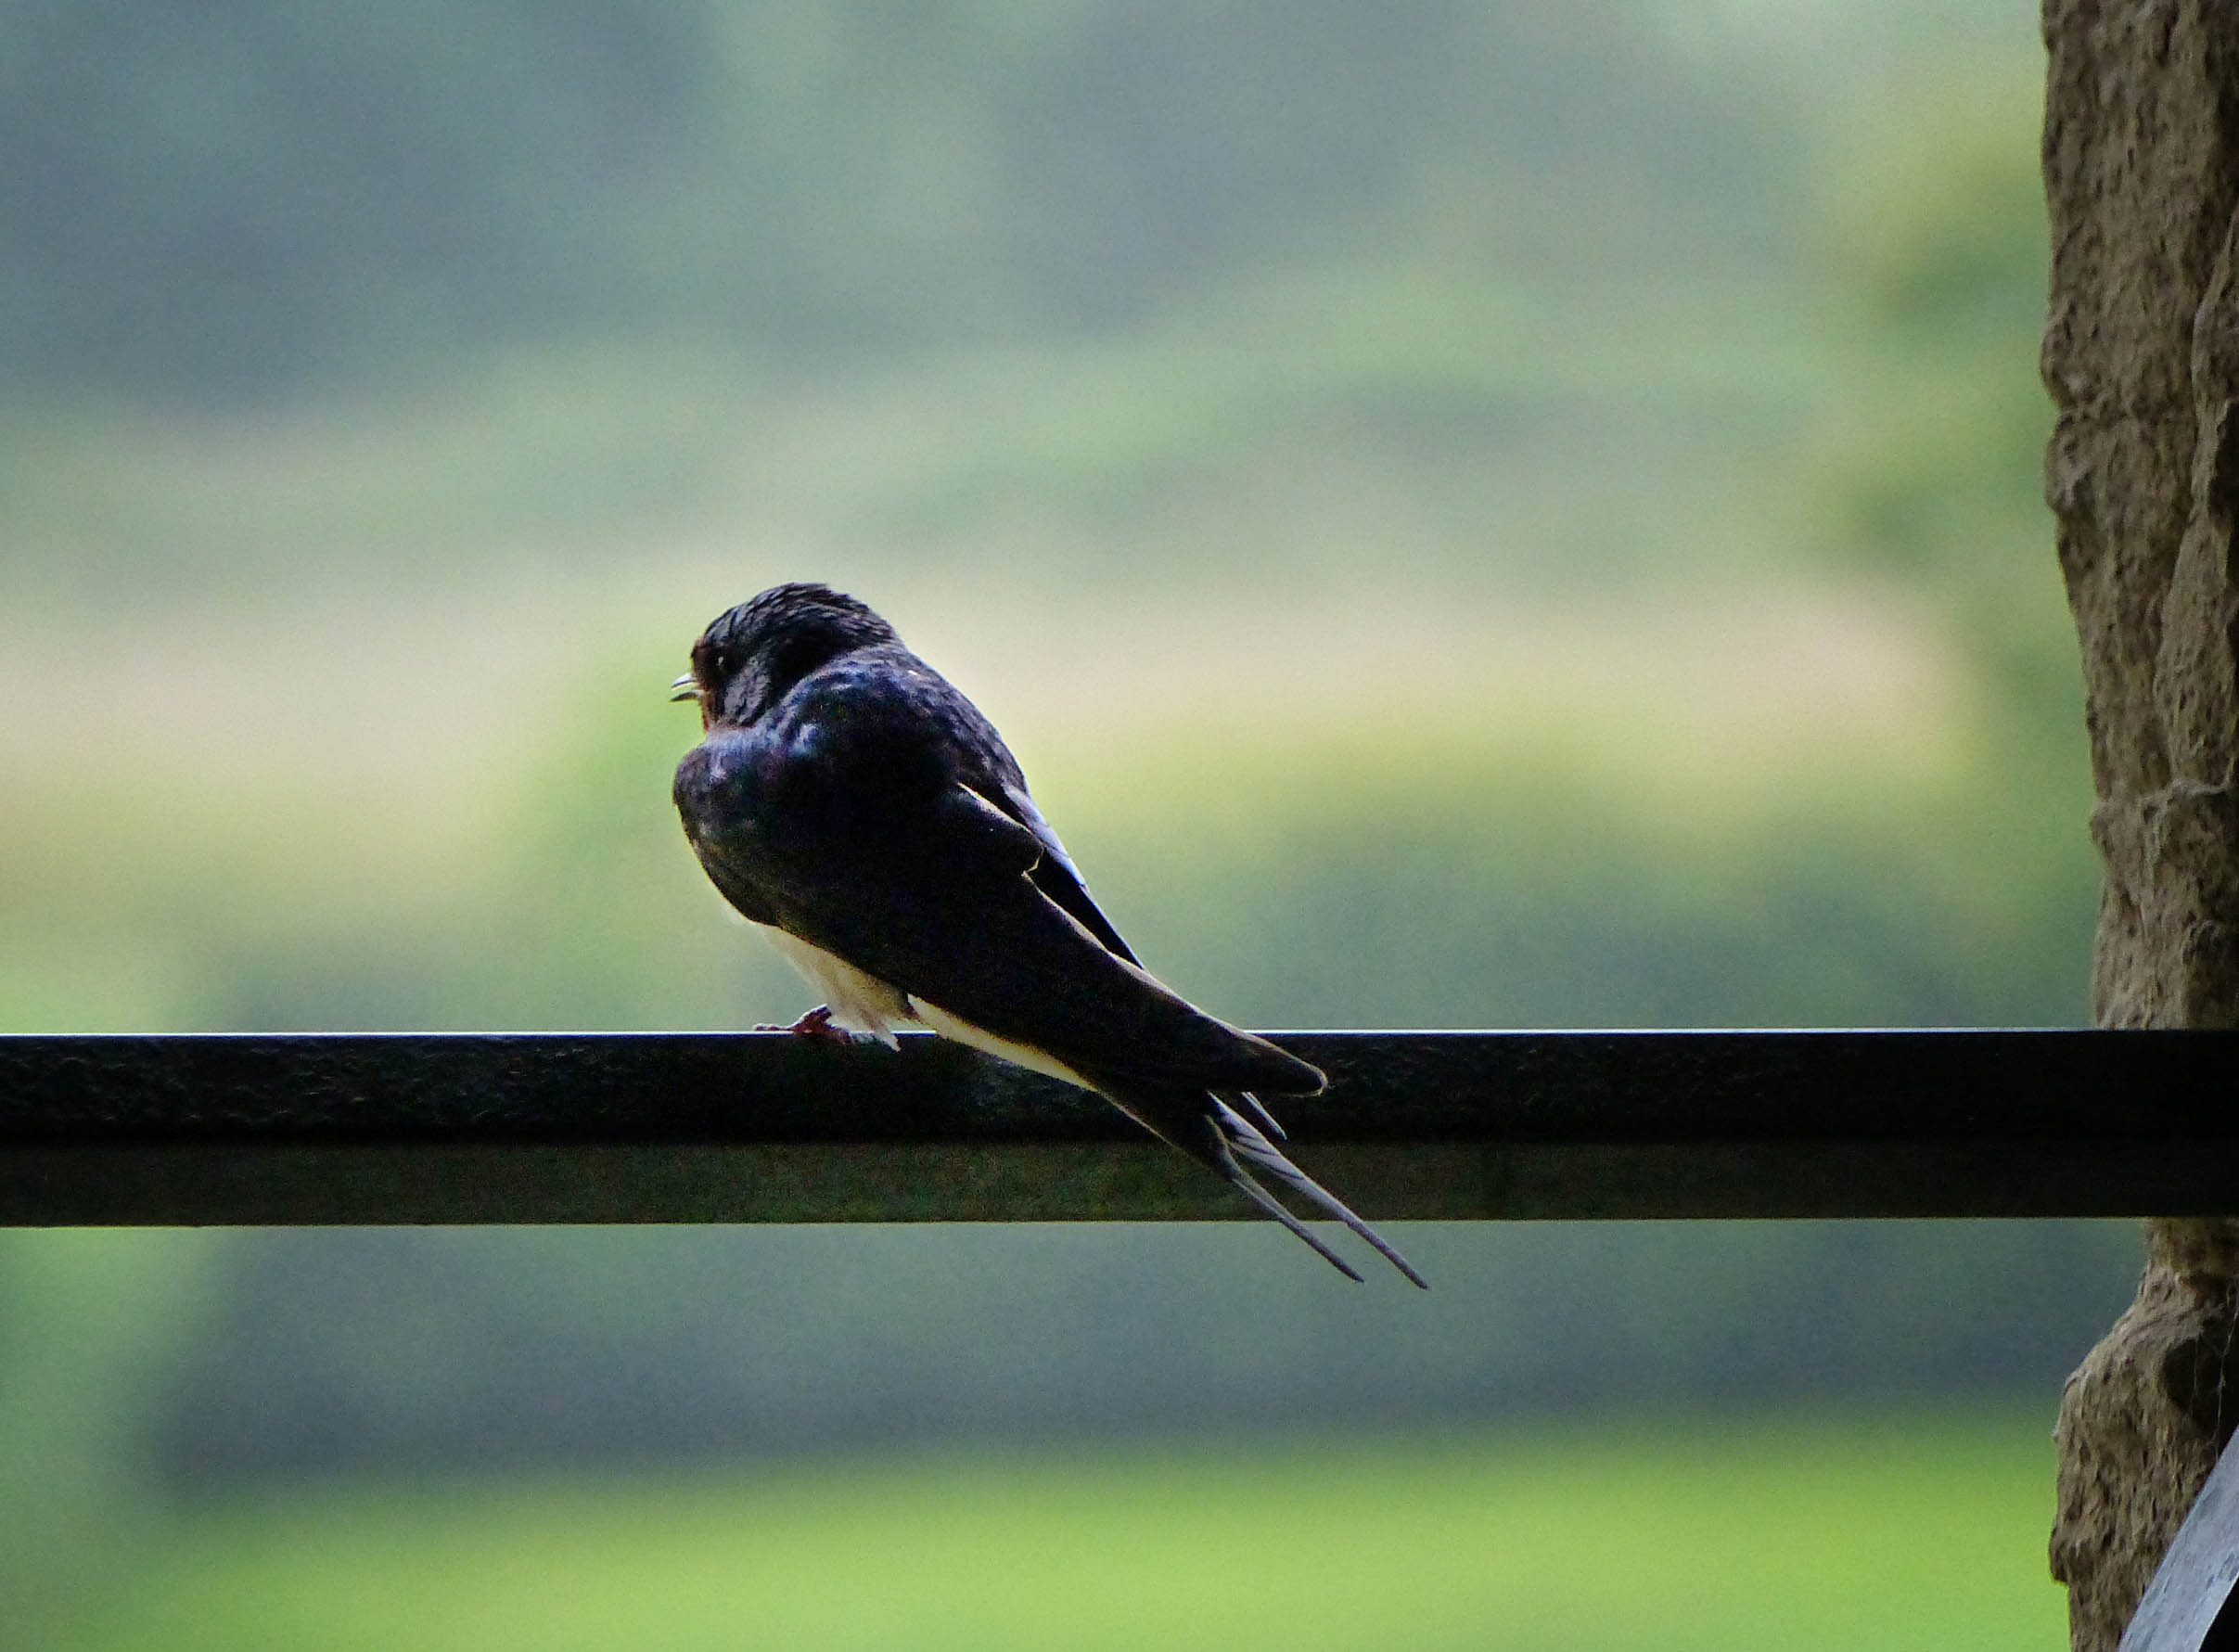 Bird perched on a rail with trees behind